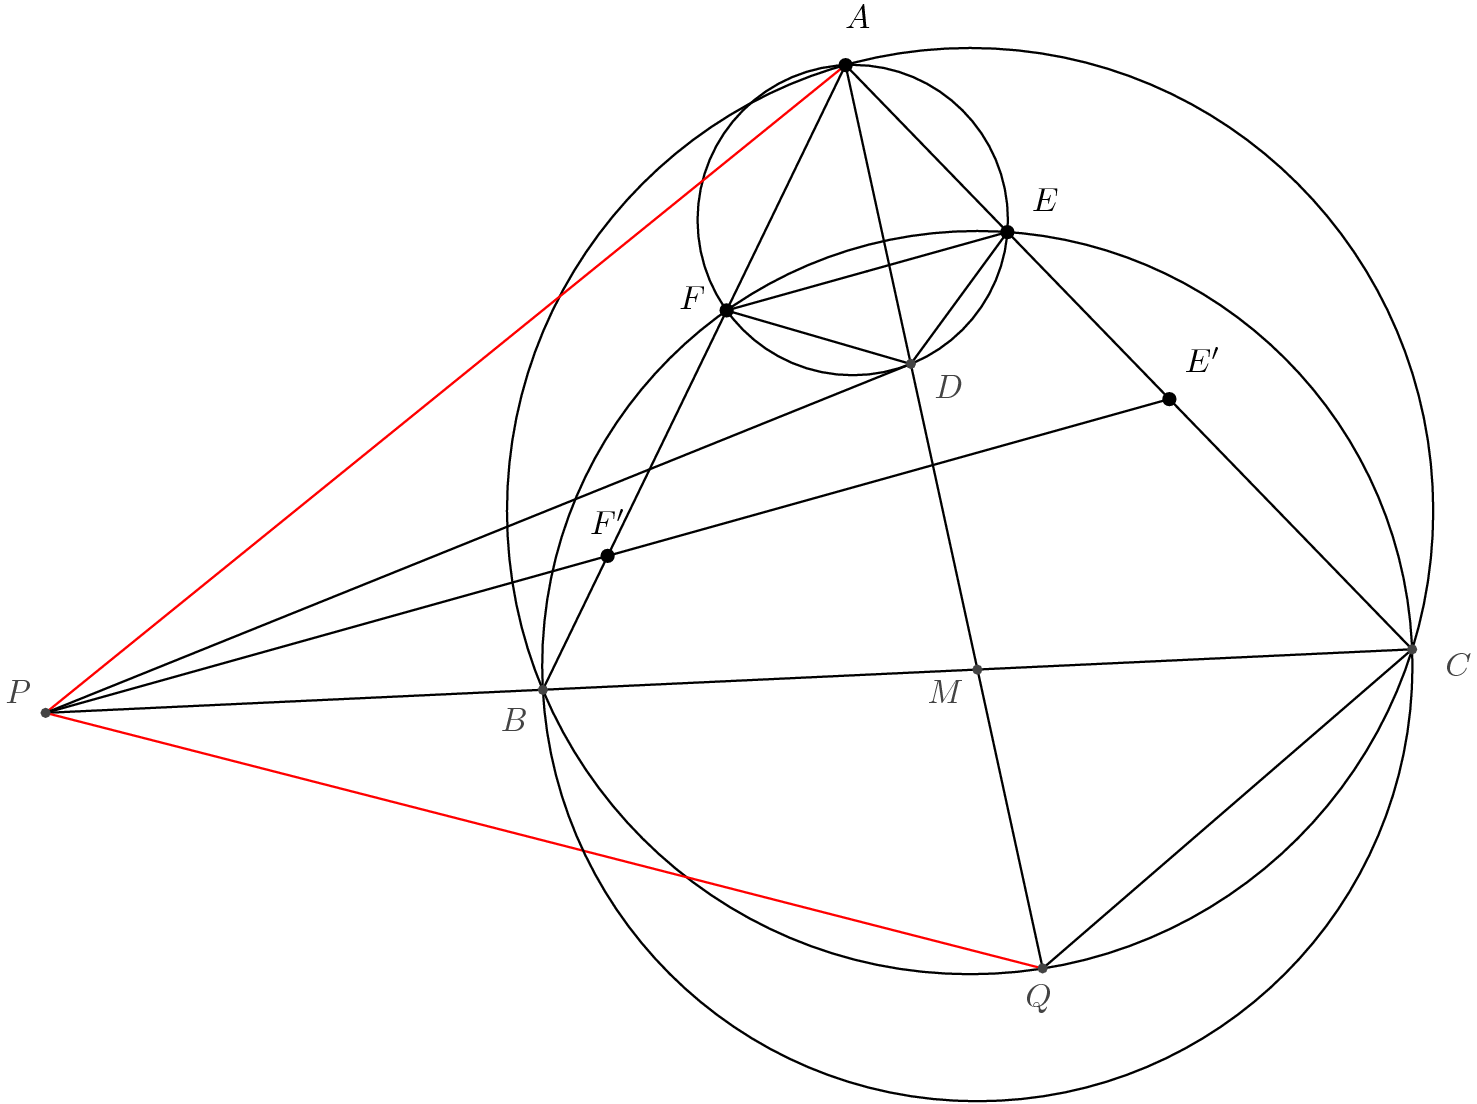 math path problem hard geometry problem asy import graph size 15 239250143446121cm real labelscalefactor 0 5